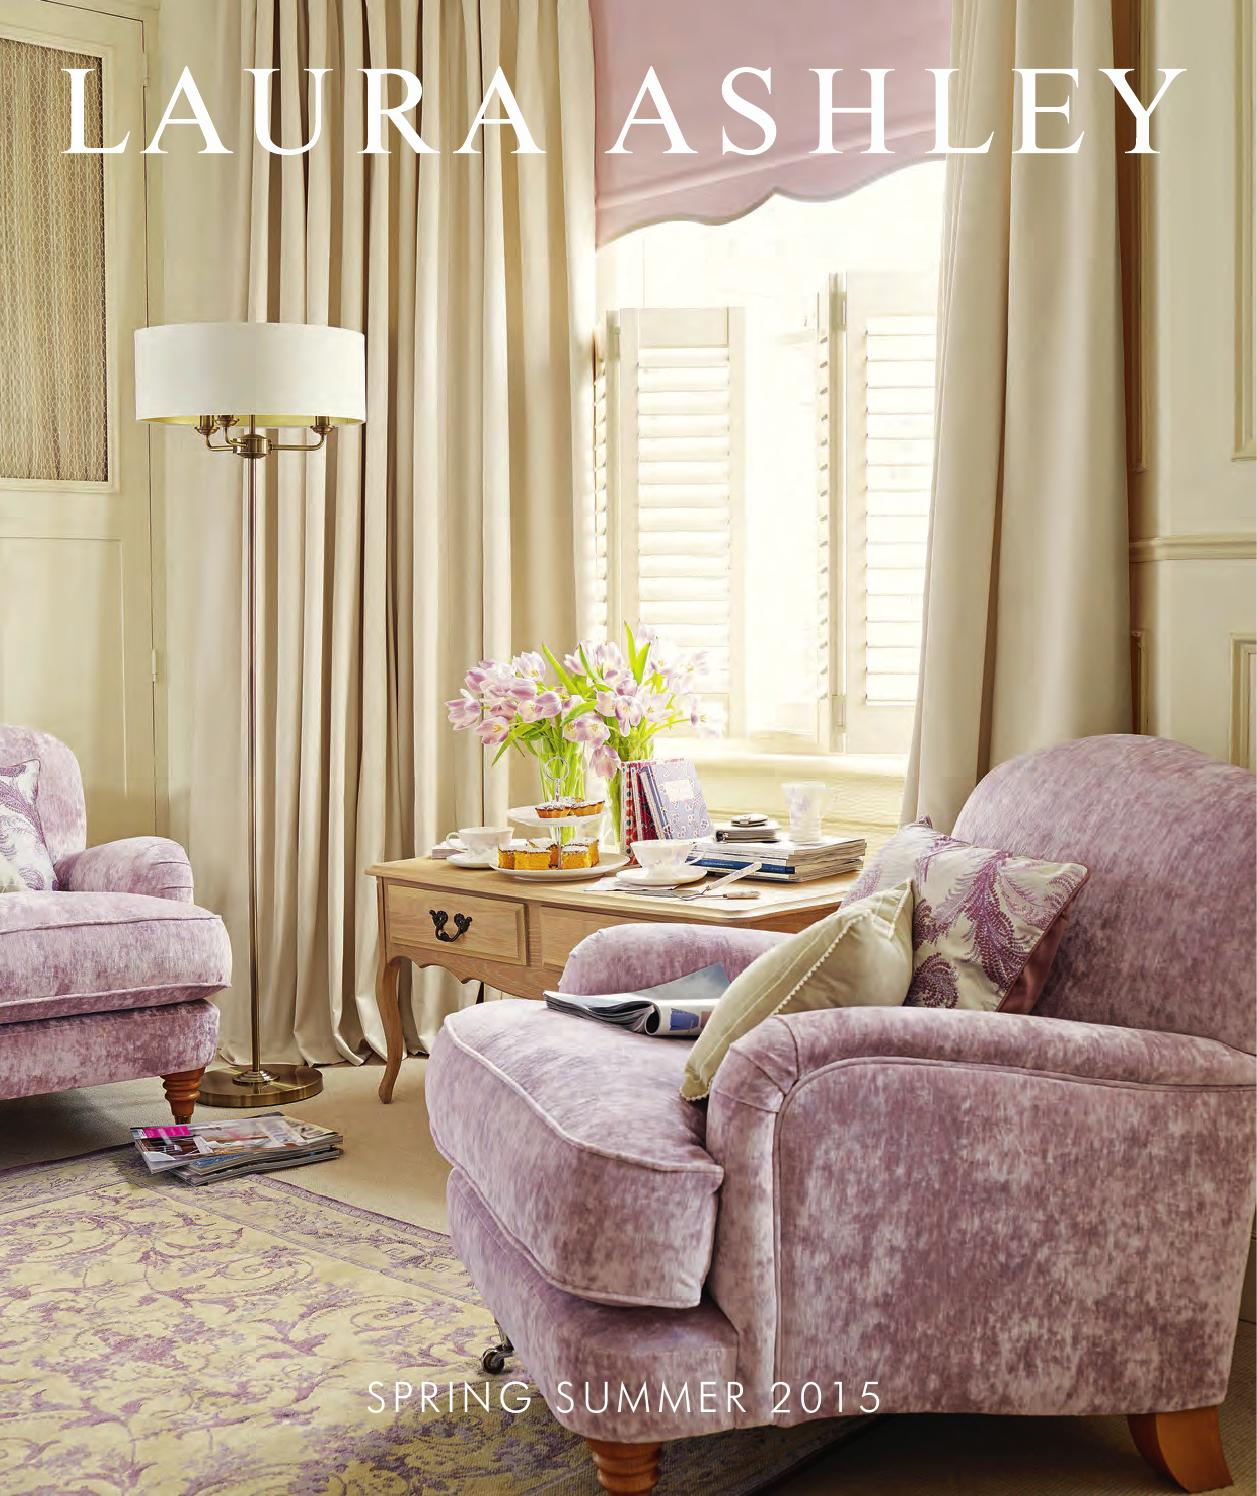 LAURA ASHLEY Spring Summer 2015 Catalogue By Stanislav Petkanov